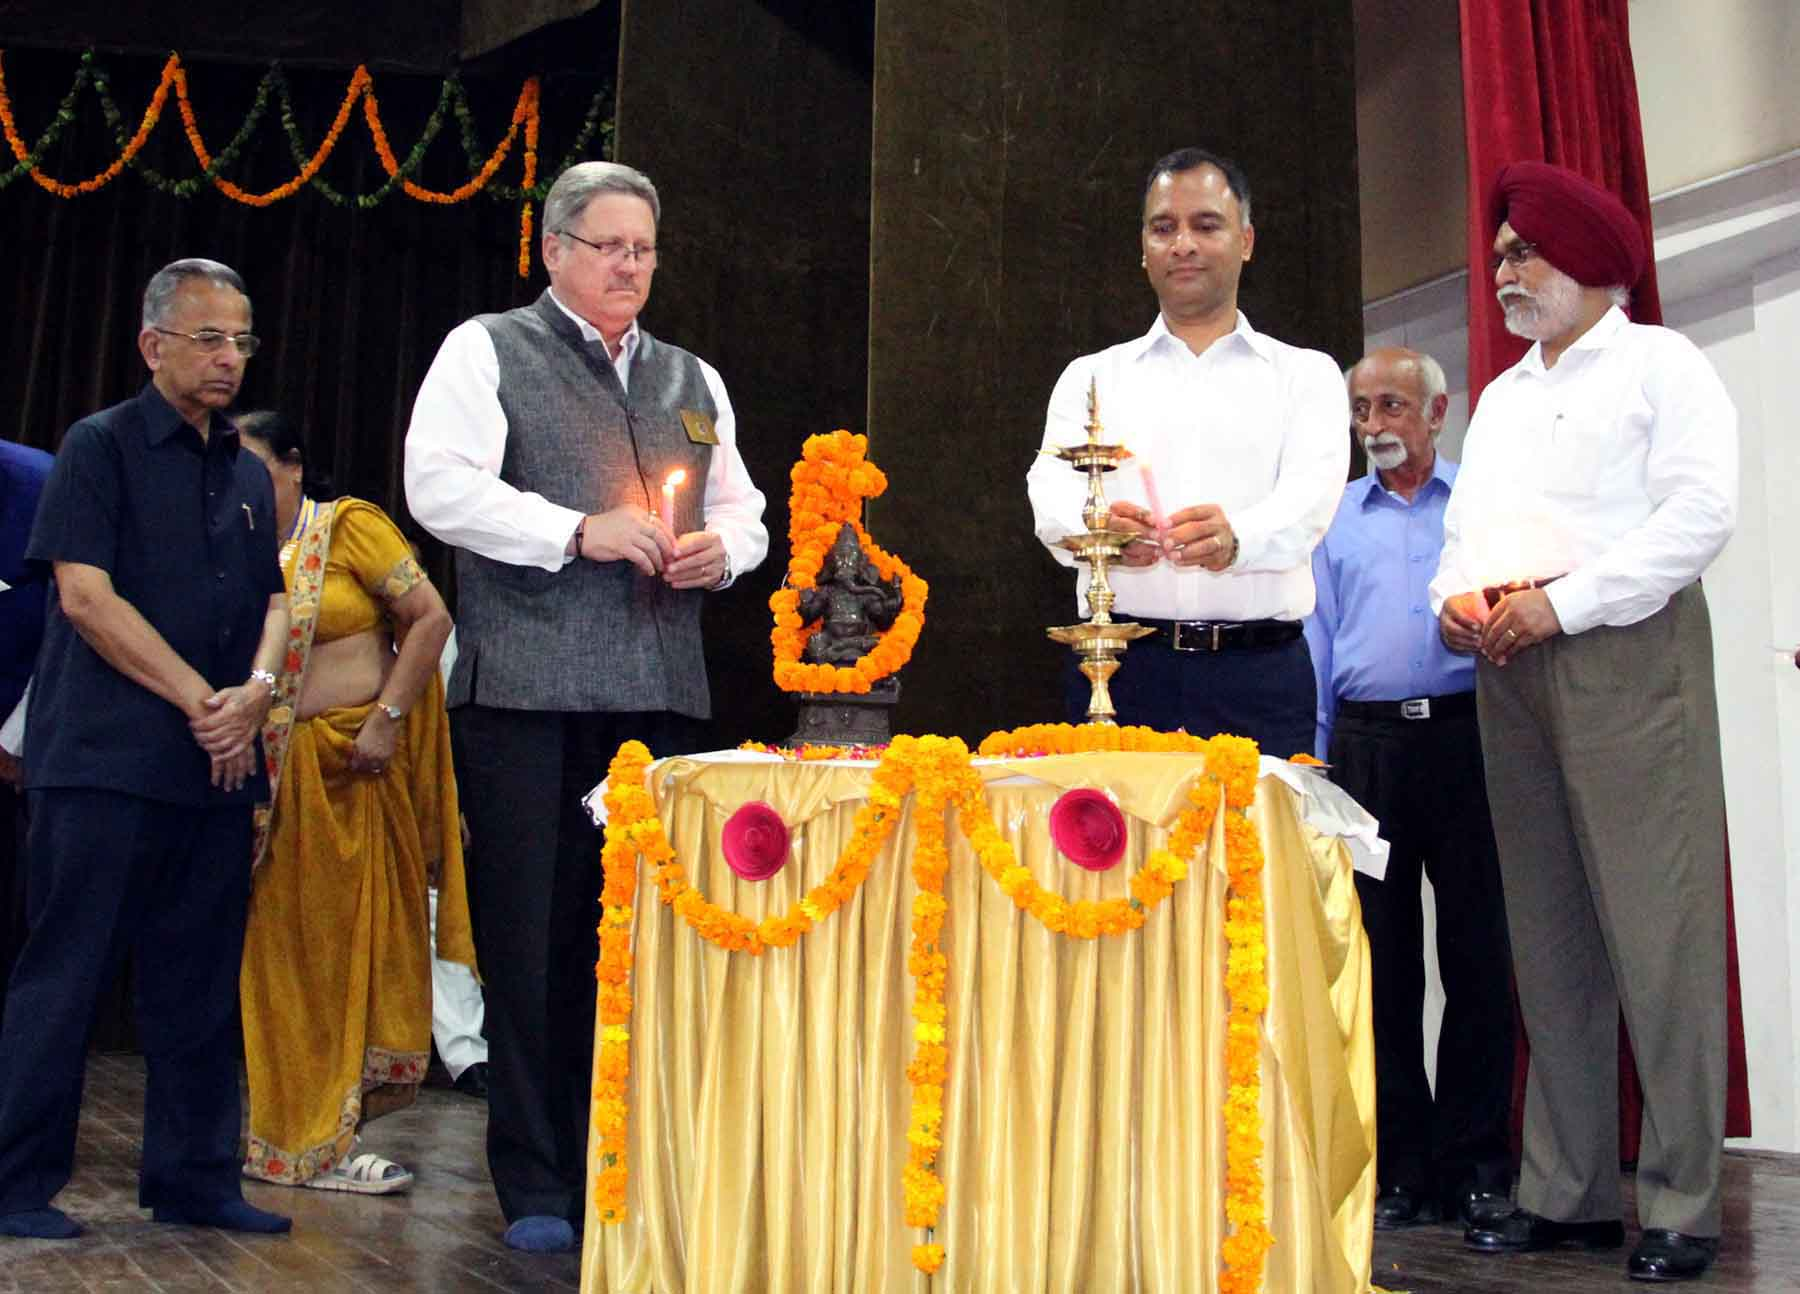 The Adviser to the Administrator, UT, Chandigarh, Mr. Vijay Dev lighting the traditional lamp at the inauguration of Skill Development Programme at Chandigarh College of Engineering and Technology, Sector-26, Chandigarh on Tuesday, September 01, 2015.